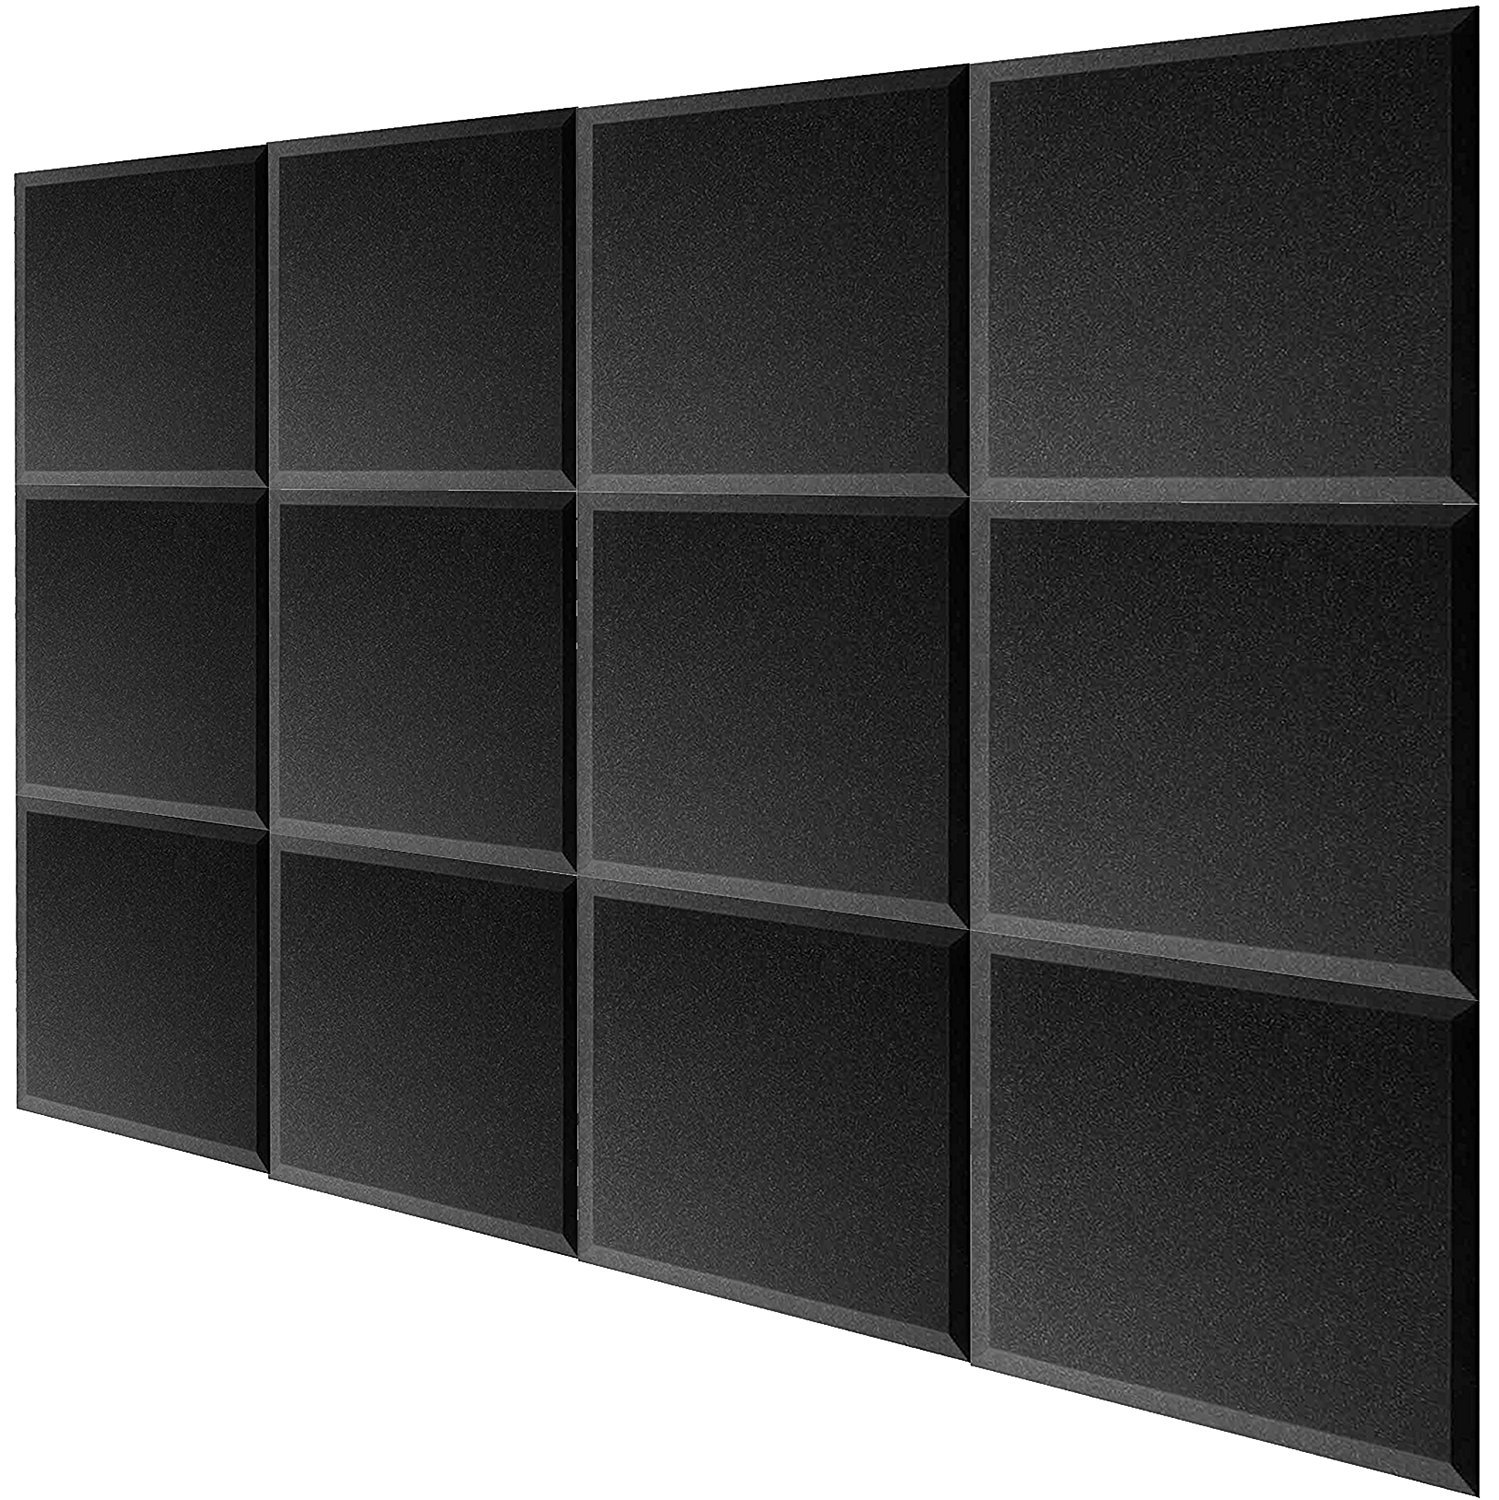 Mybecca 24 pack Acoustic Foam BEVEL Tiles Soundproofing Wall Panel 12 x 12 x 1 inch, Made in USA